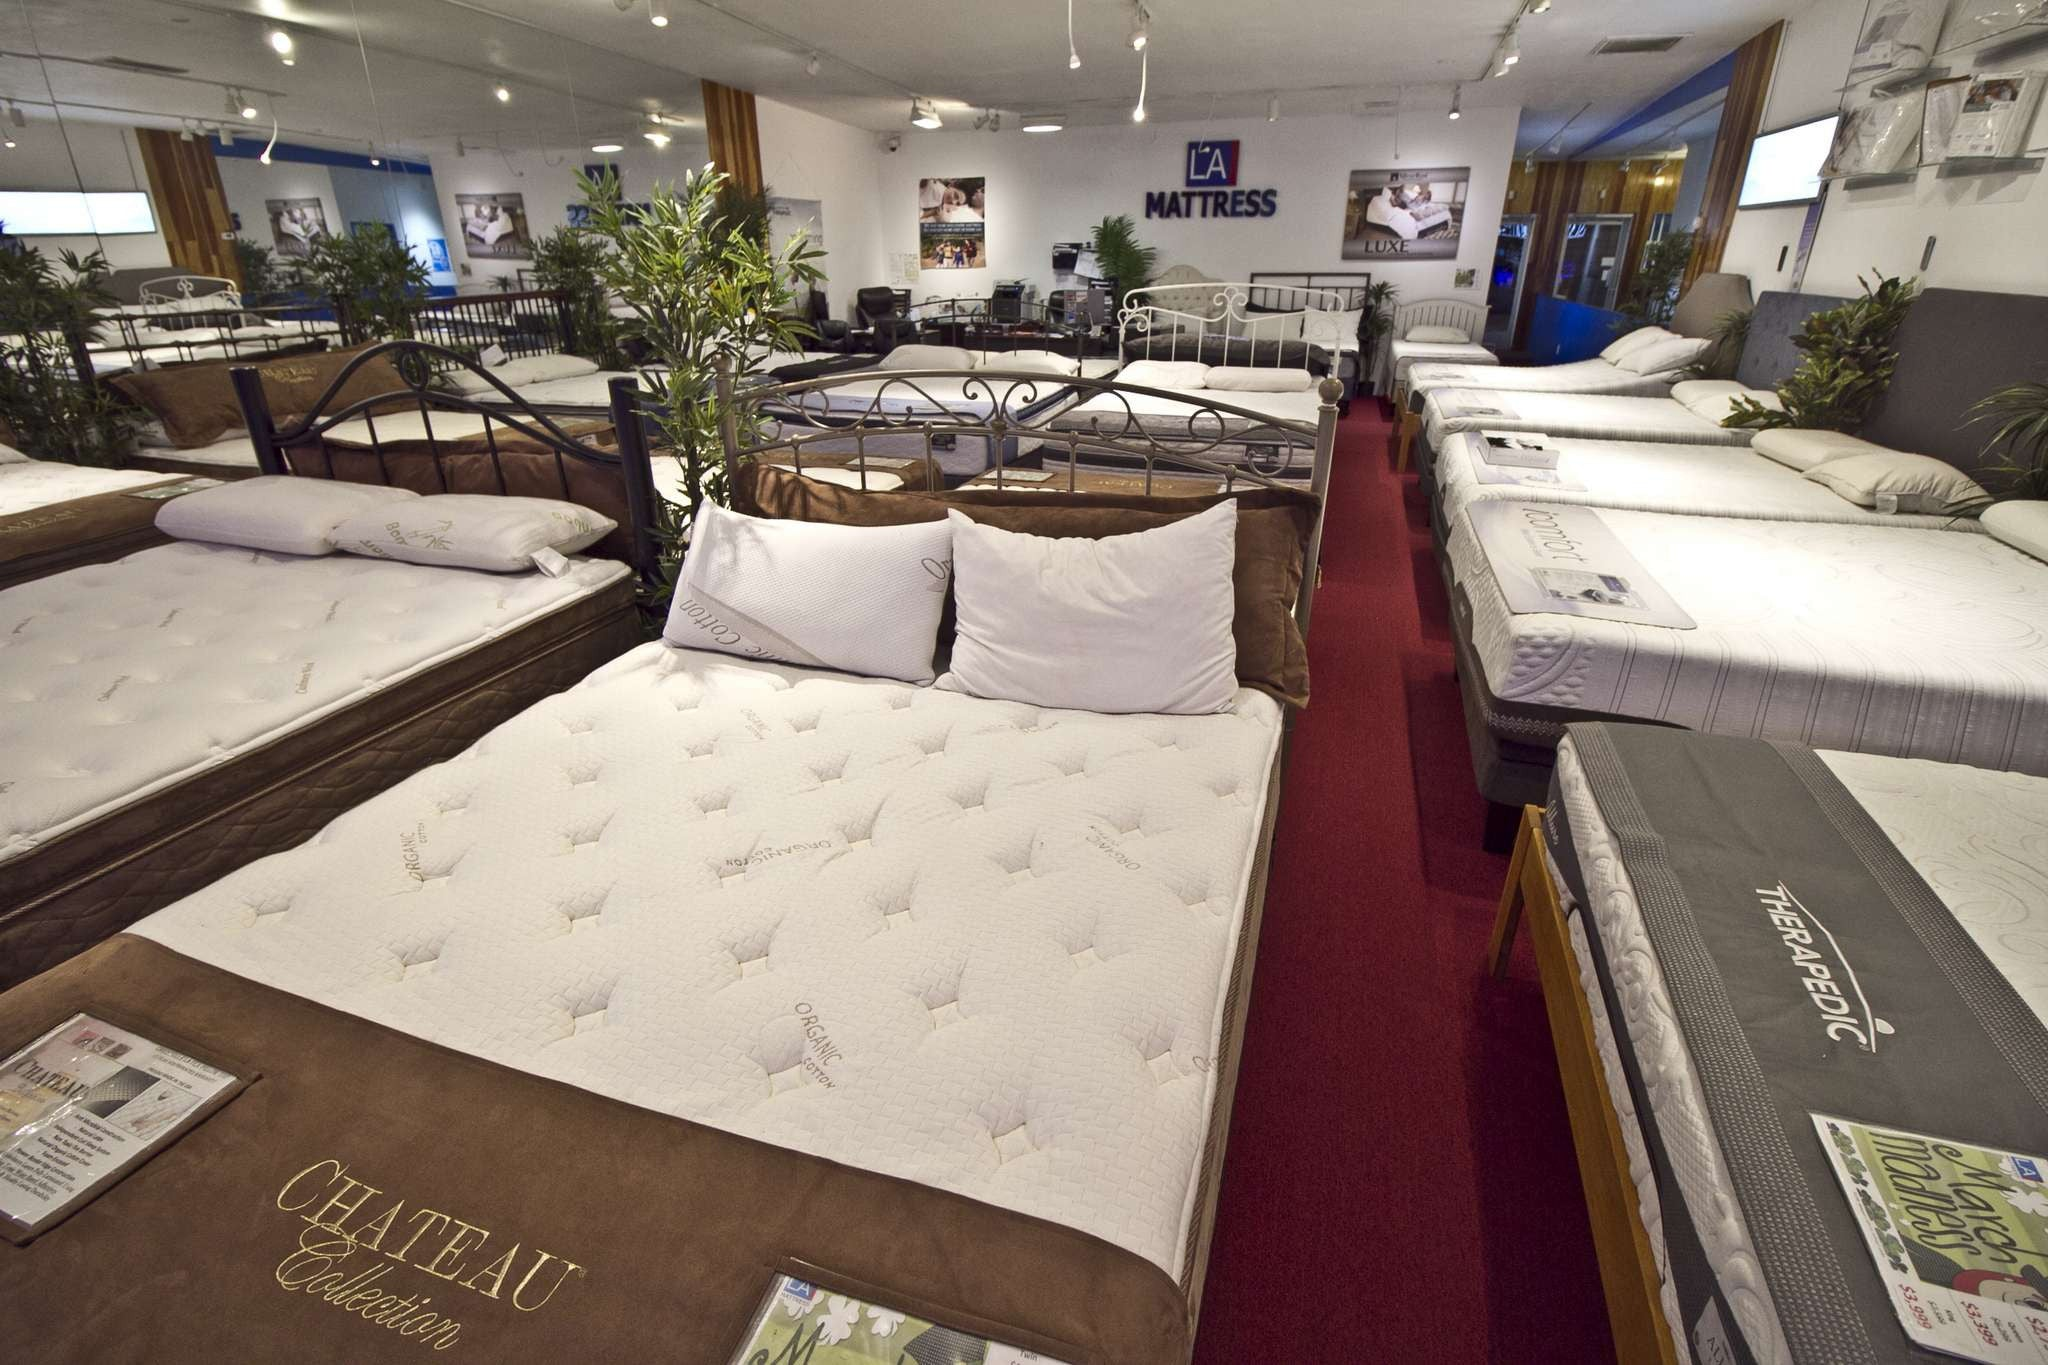 King Size Latex Mattress Studio City Mattress Stores CA